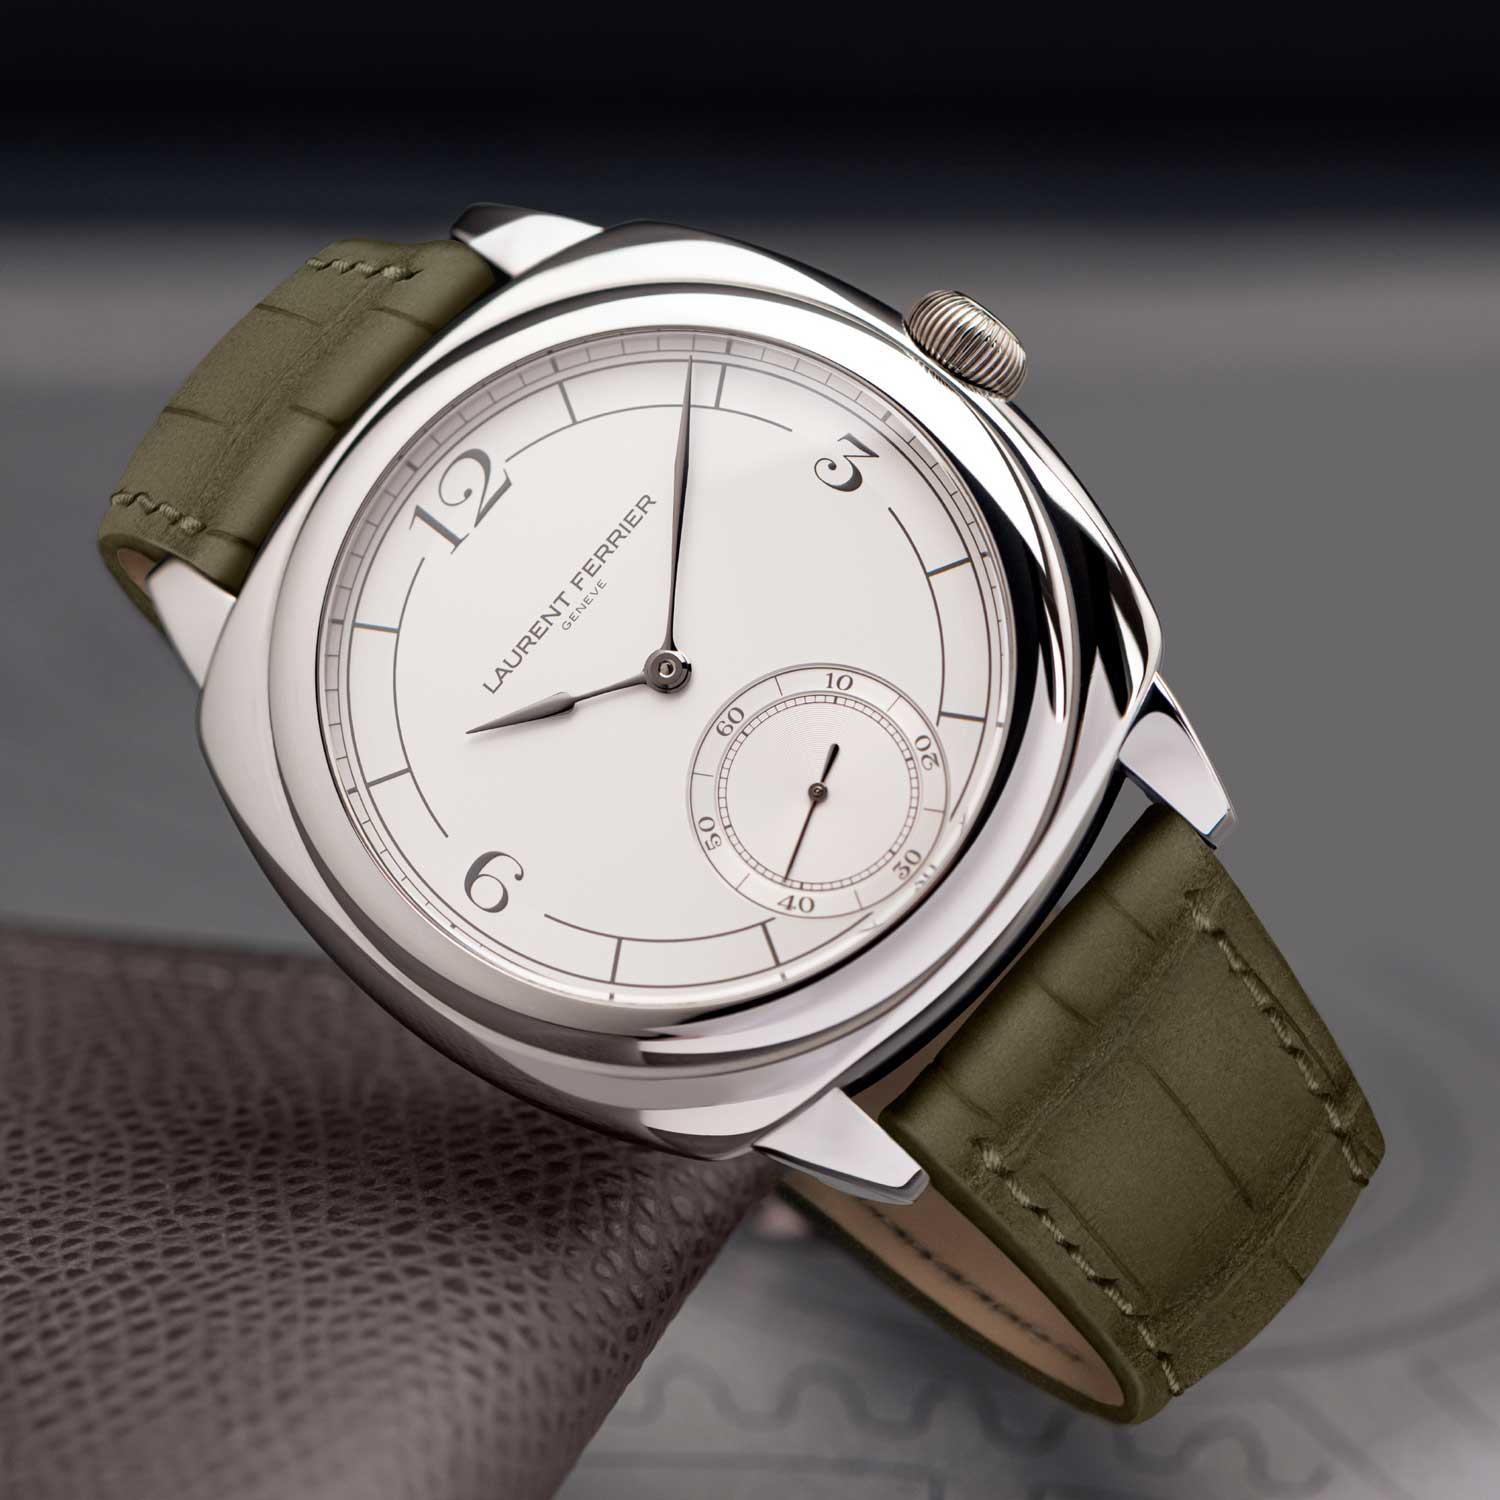 The 2021 Laurent Ferrier Square Micro-Rotor in steel